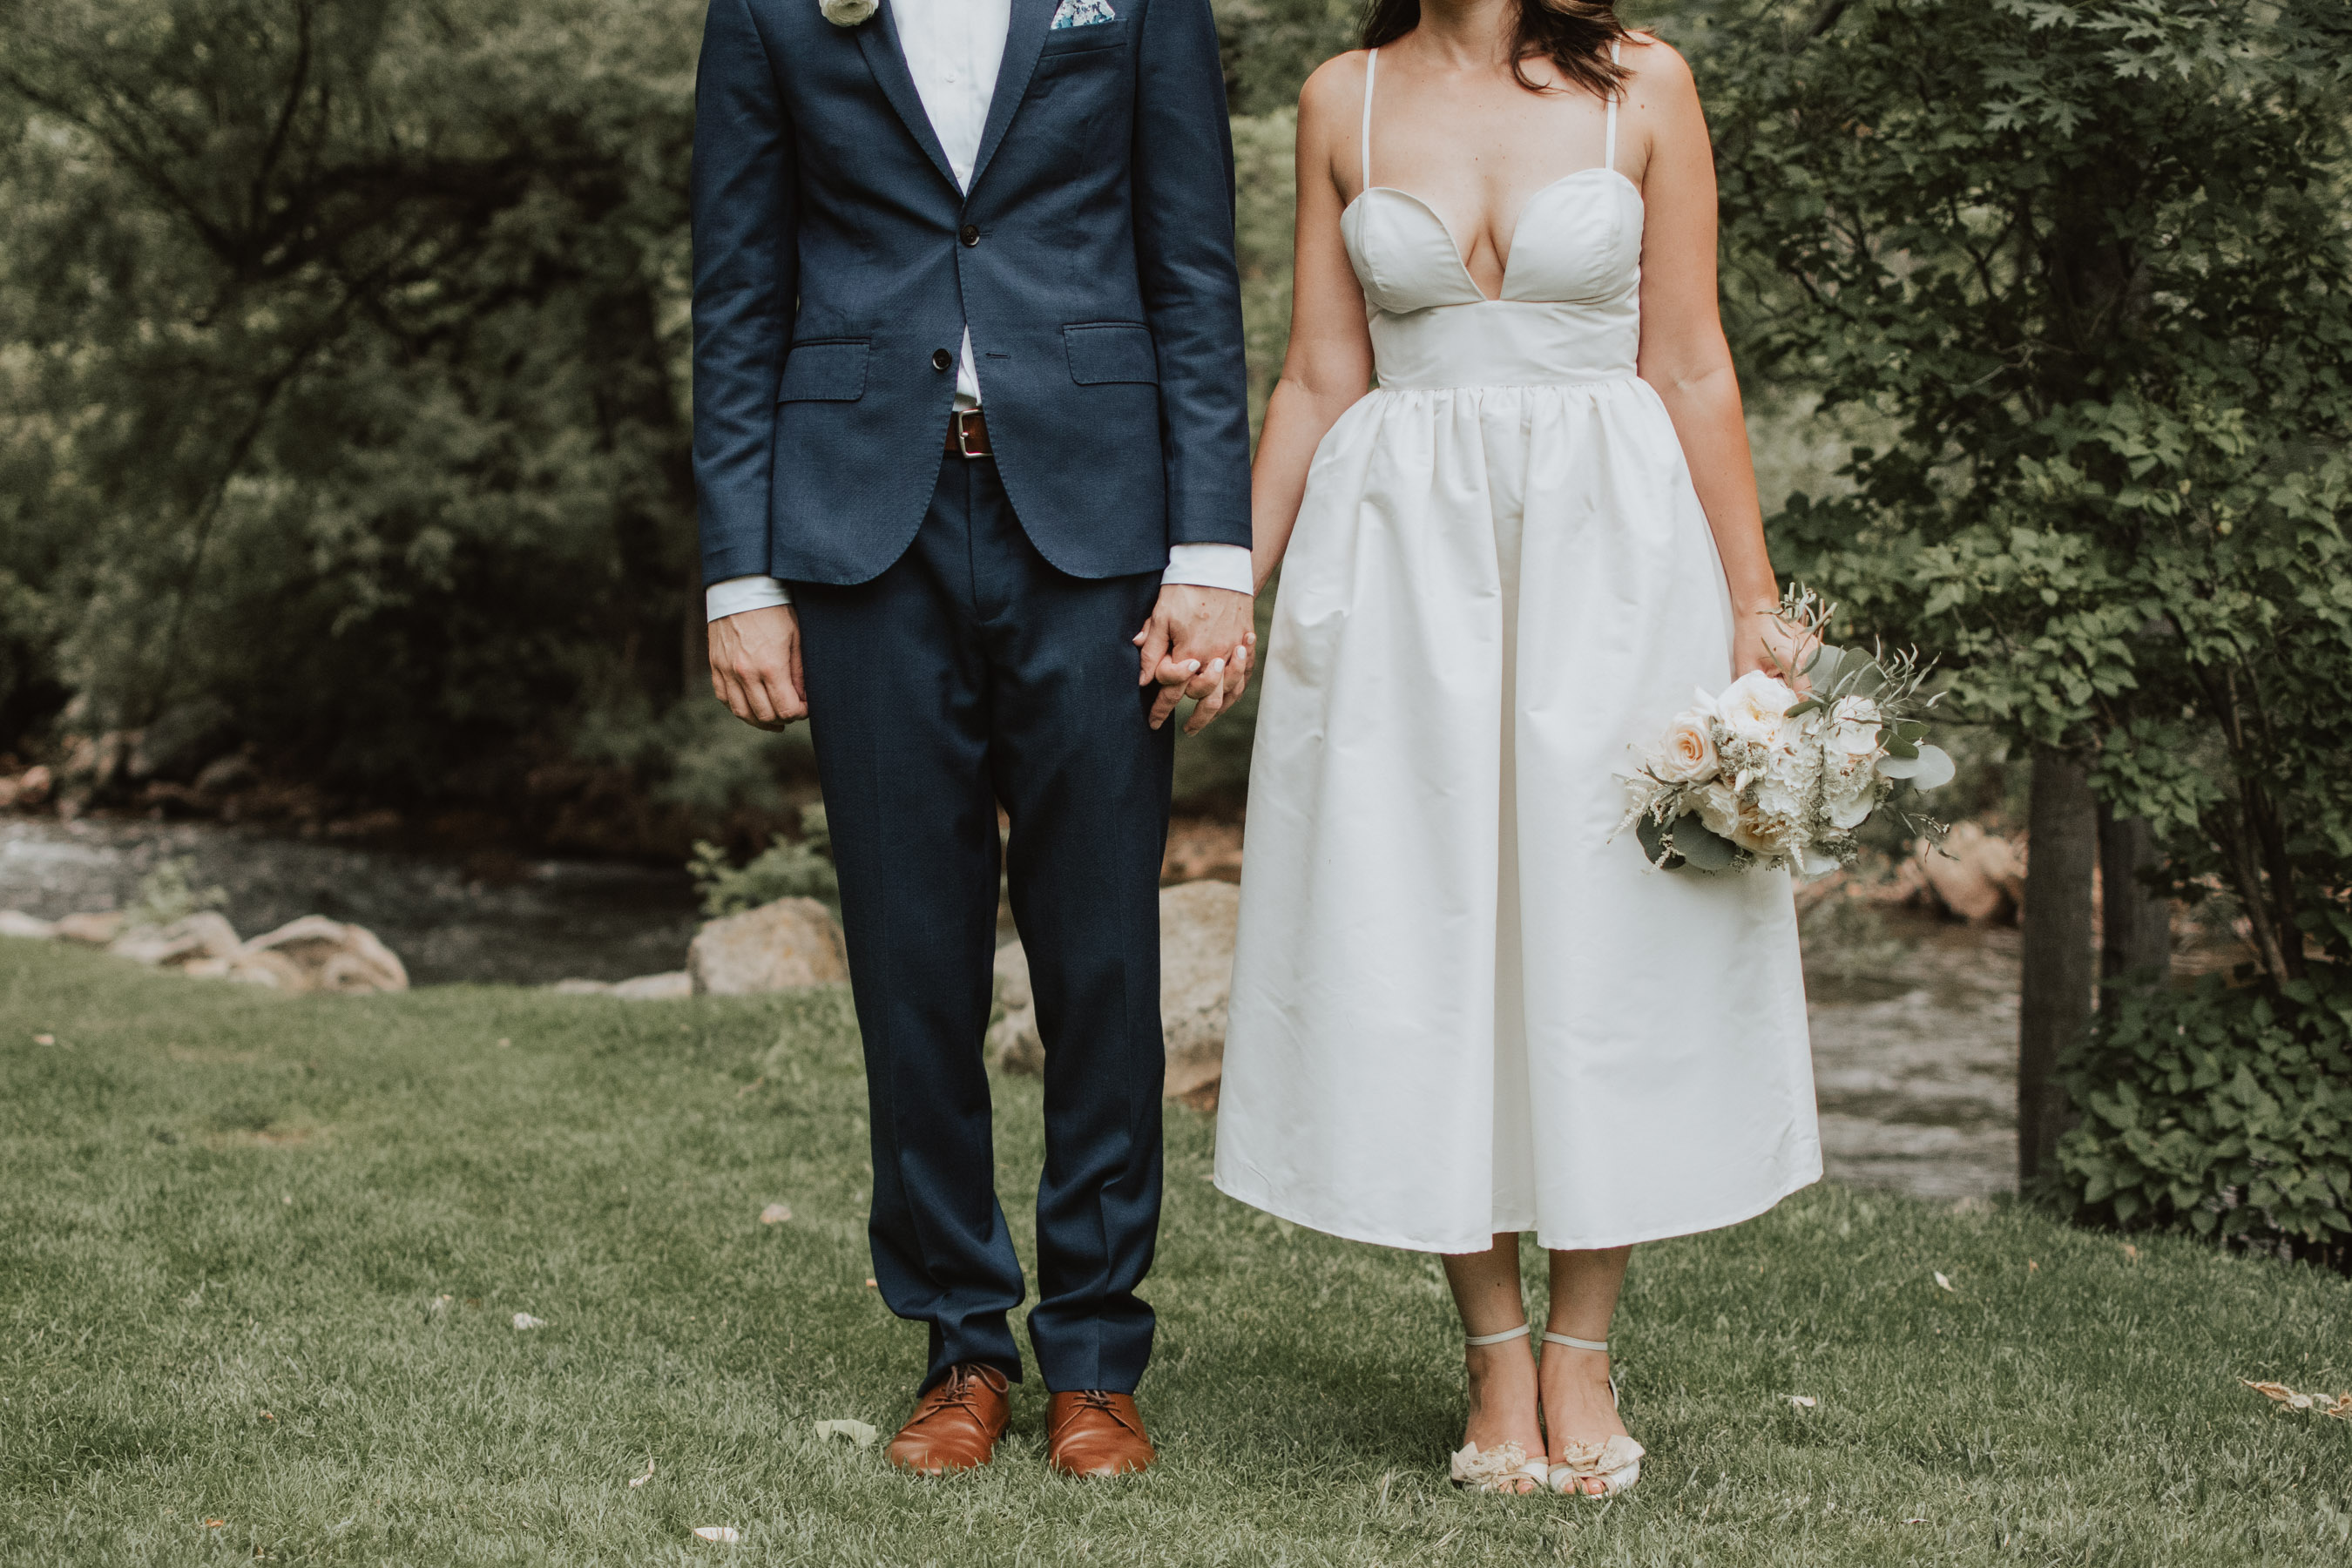 boulder wedding photographer colorado wedding photo couples short-wedding-dress